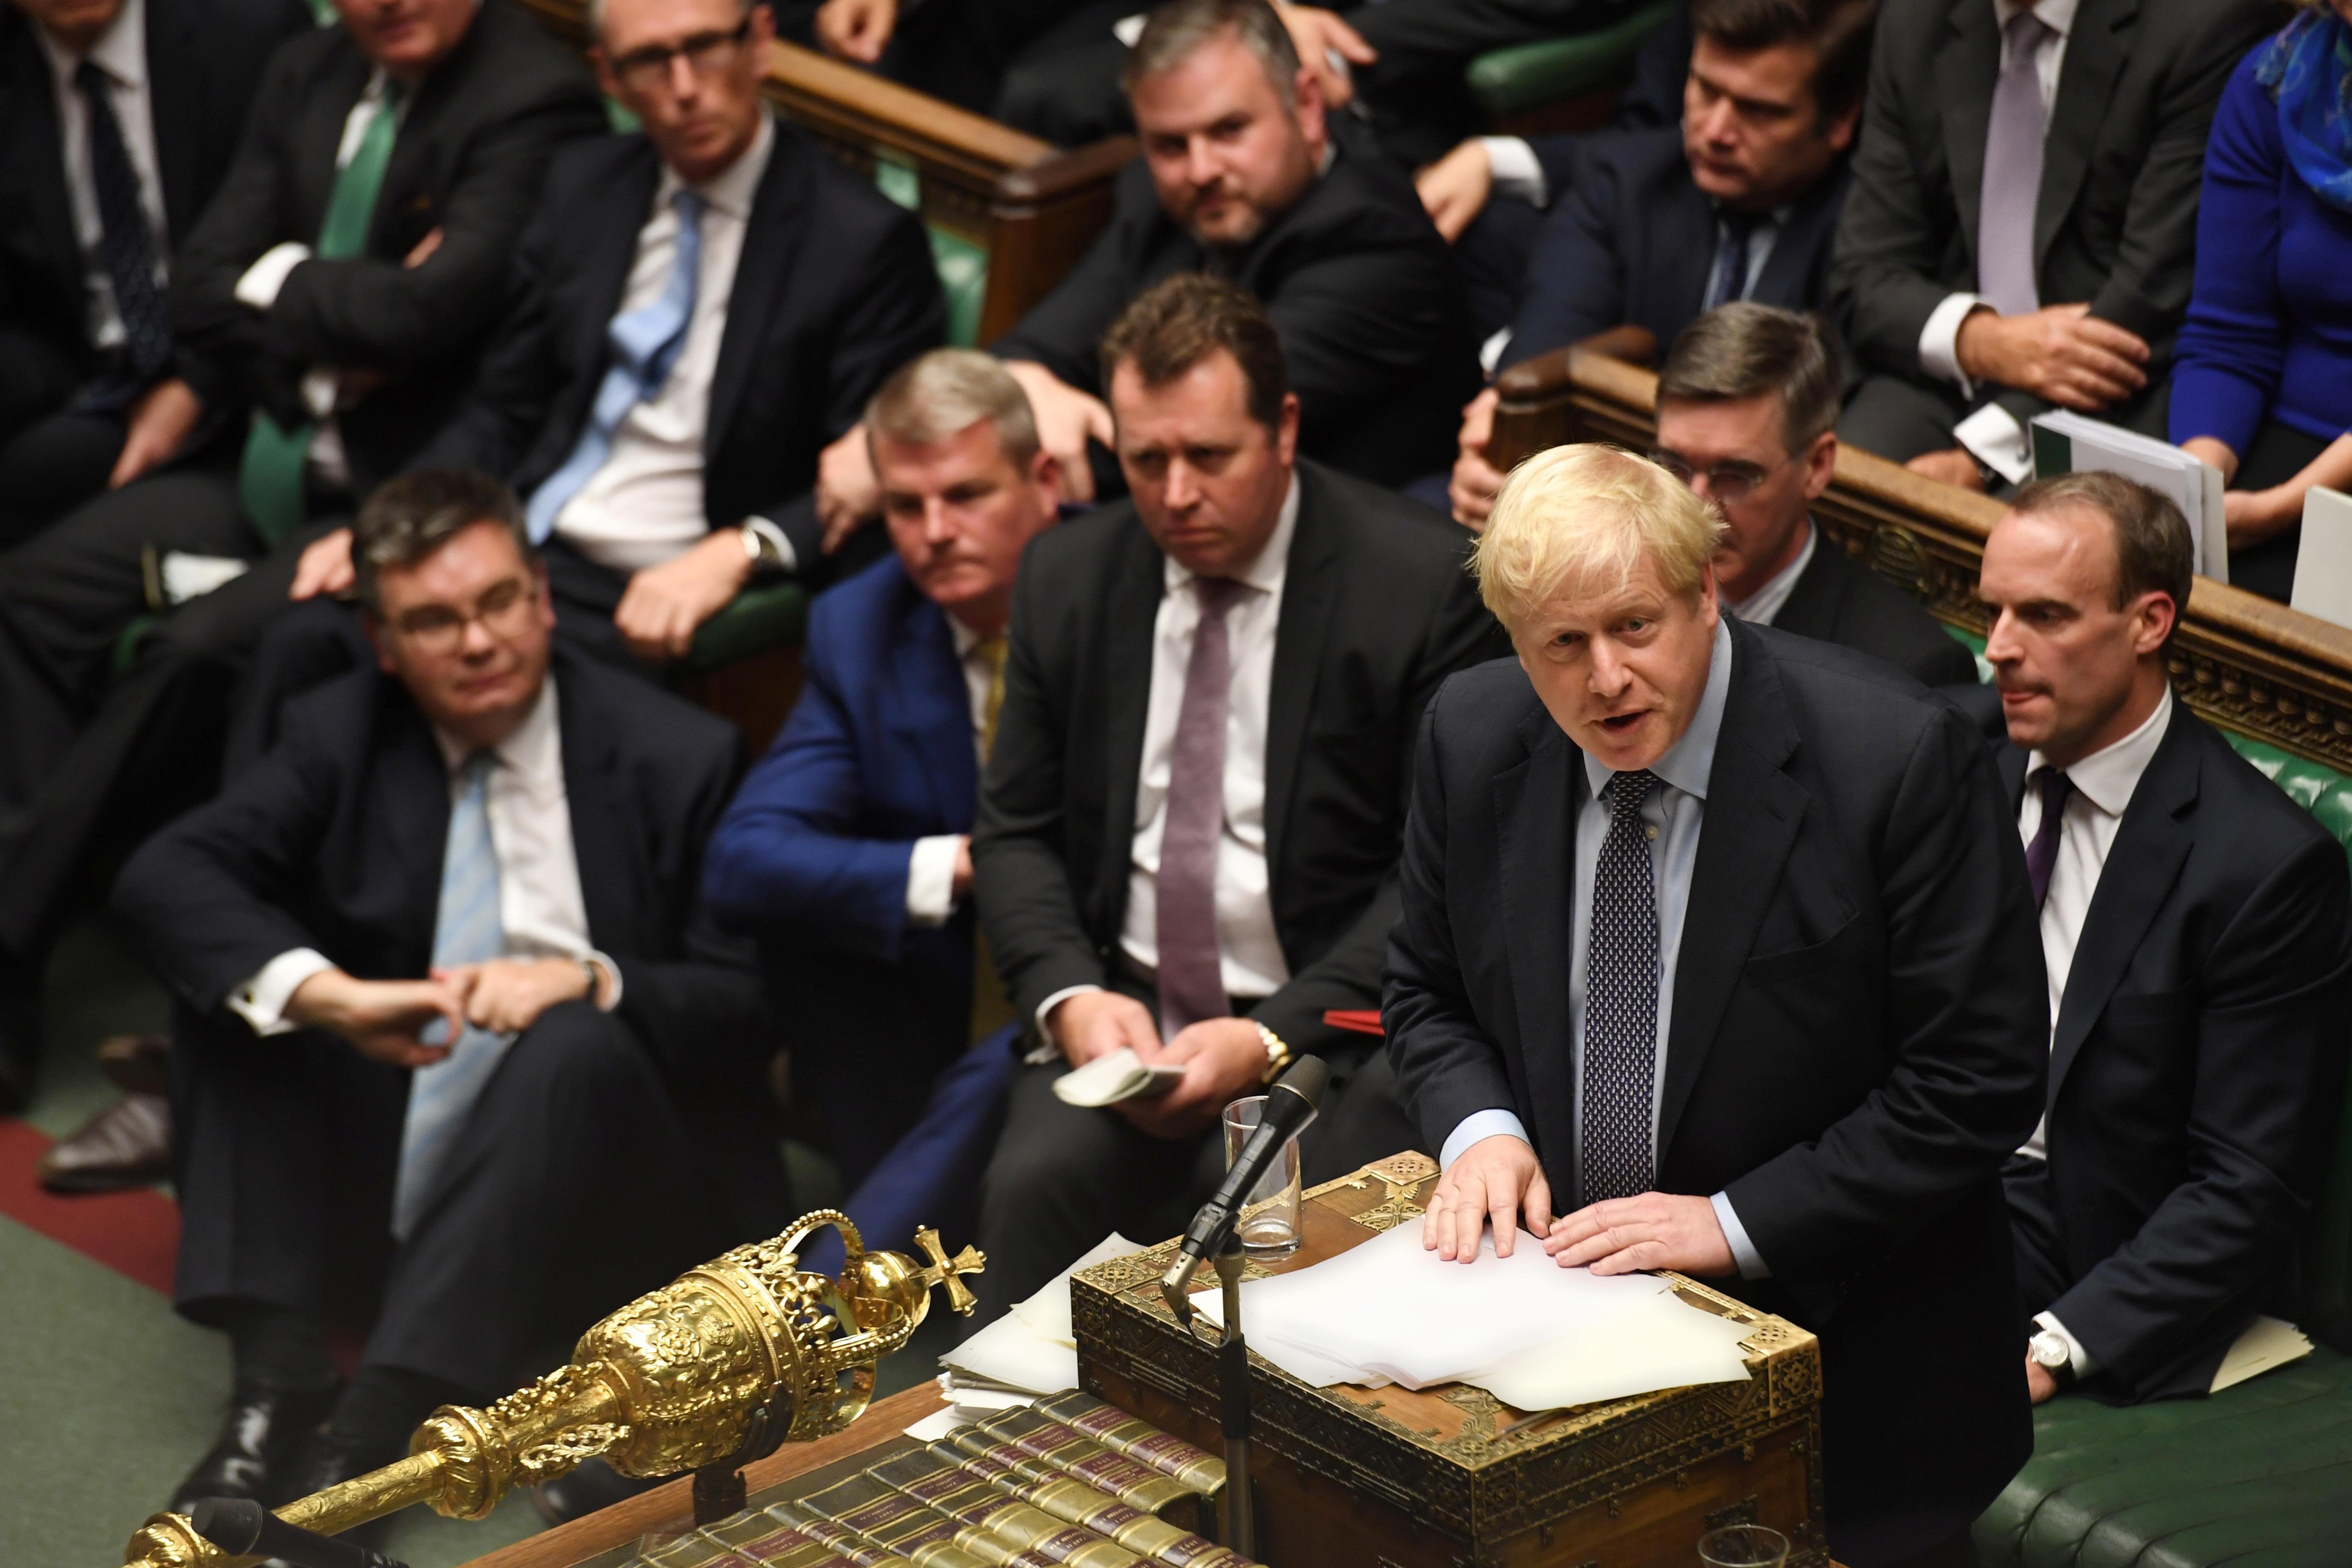 Brexit in the balance as Johnson faces crunch votes